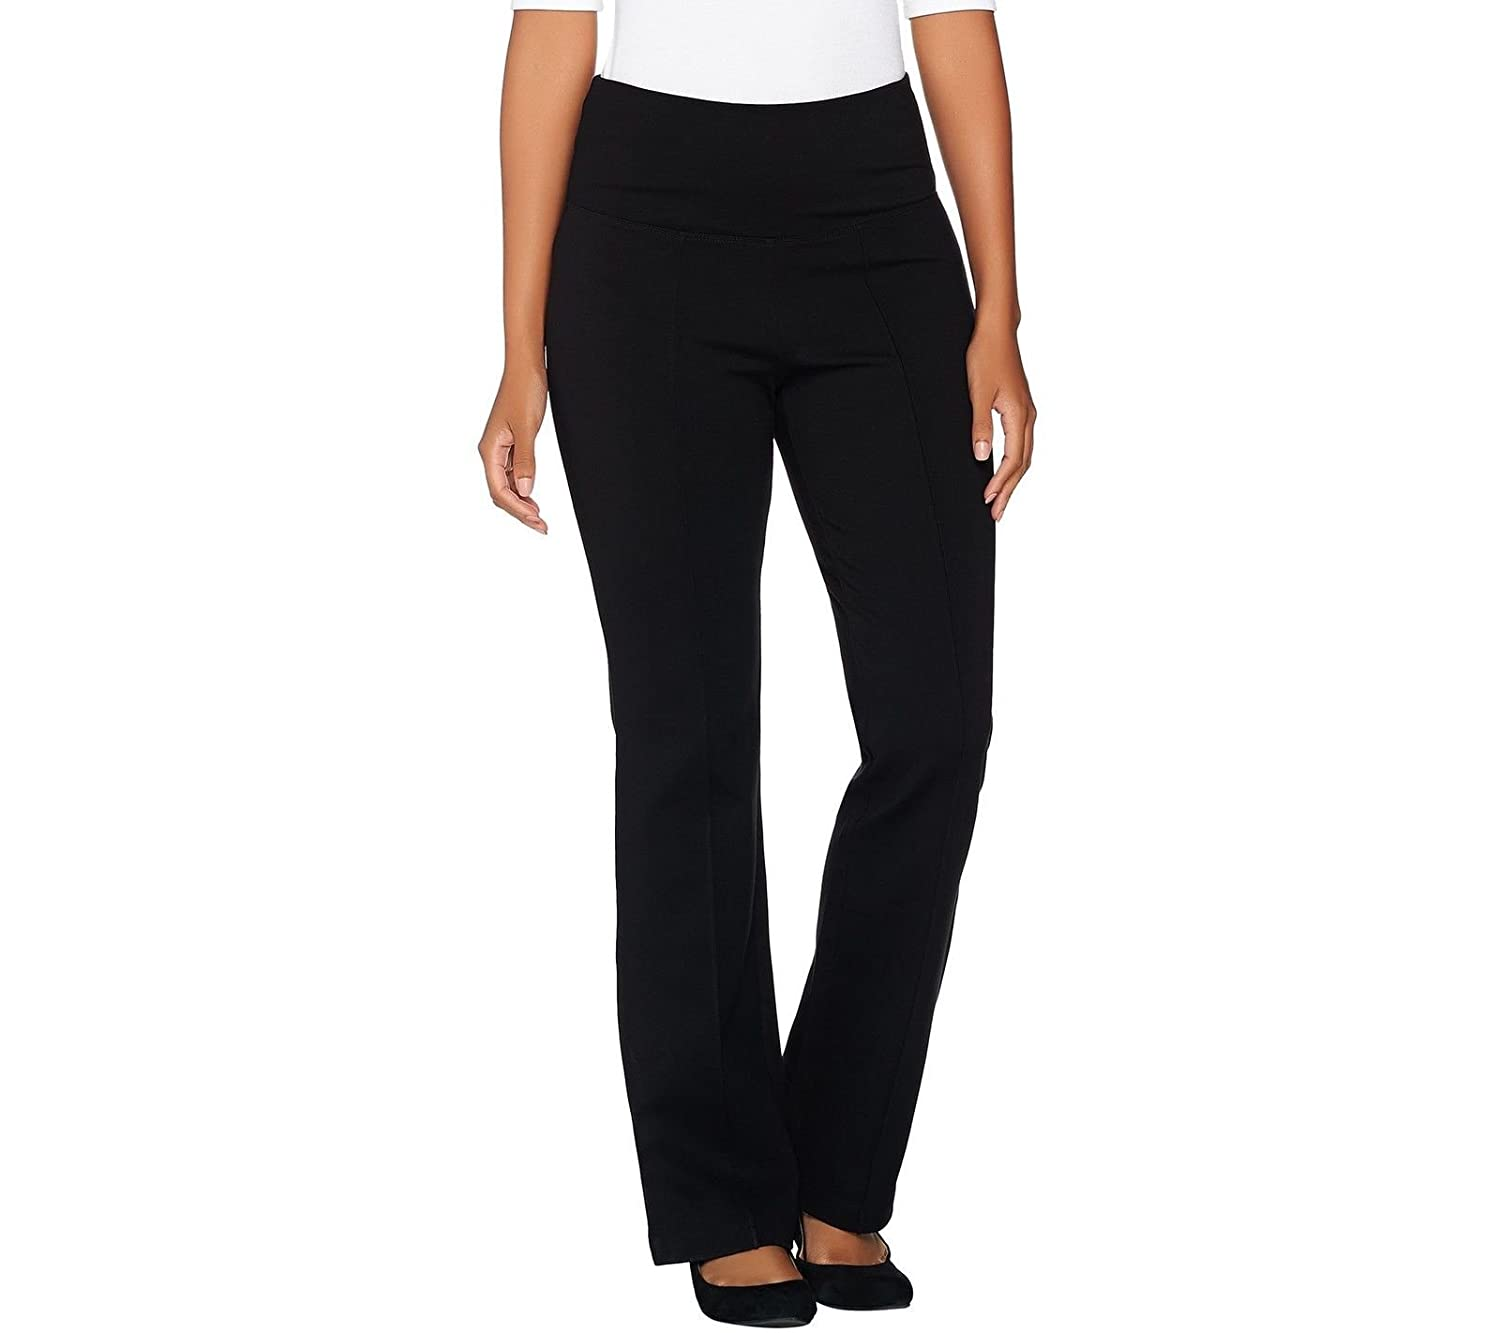 Belle Kim Gravel Tummy Smoothing Ponte Pants A283053